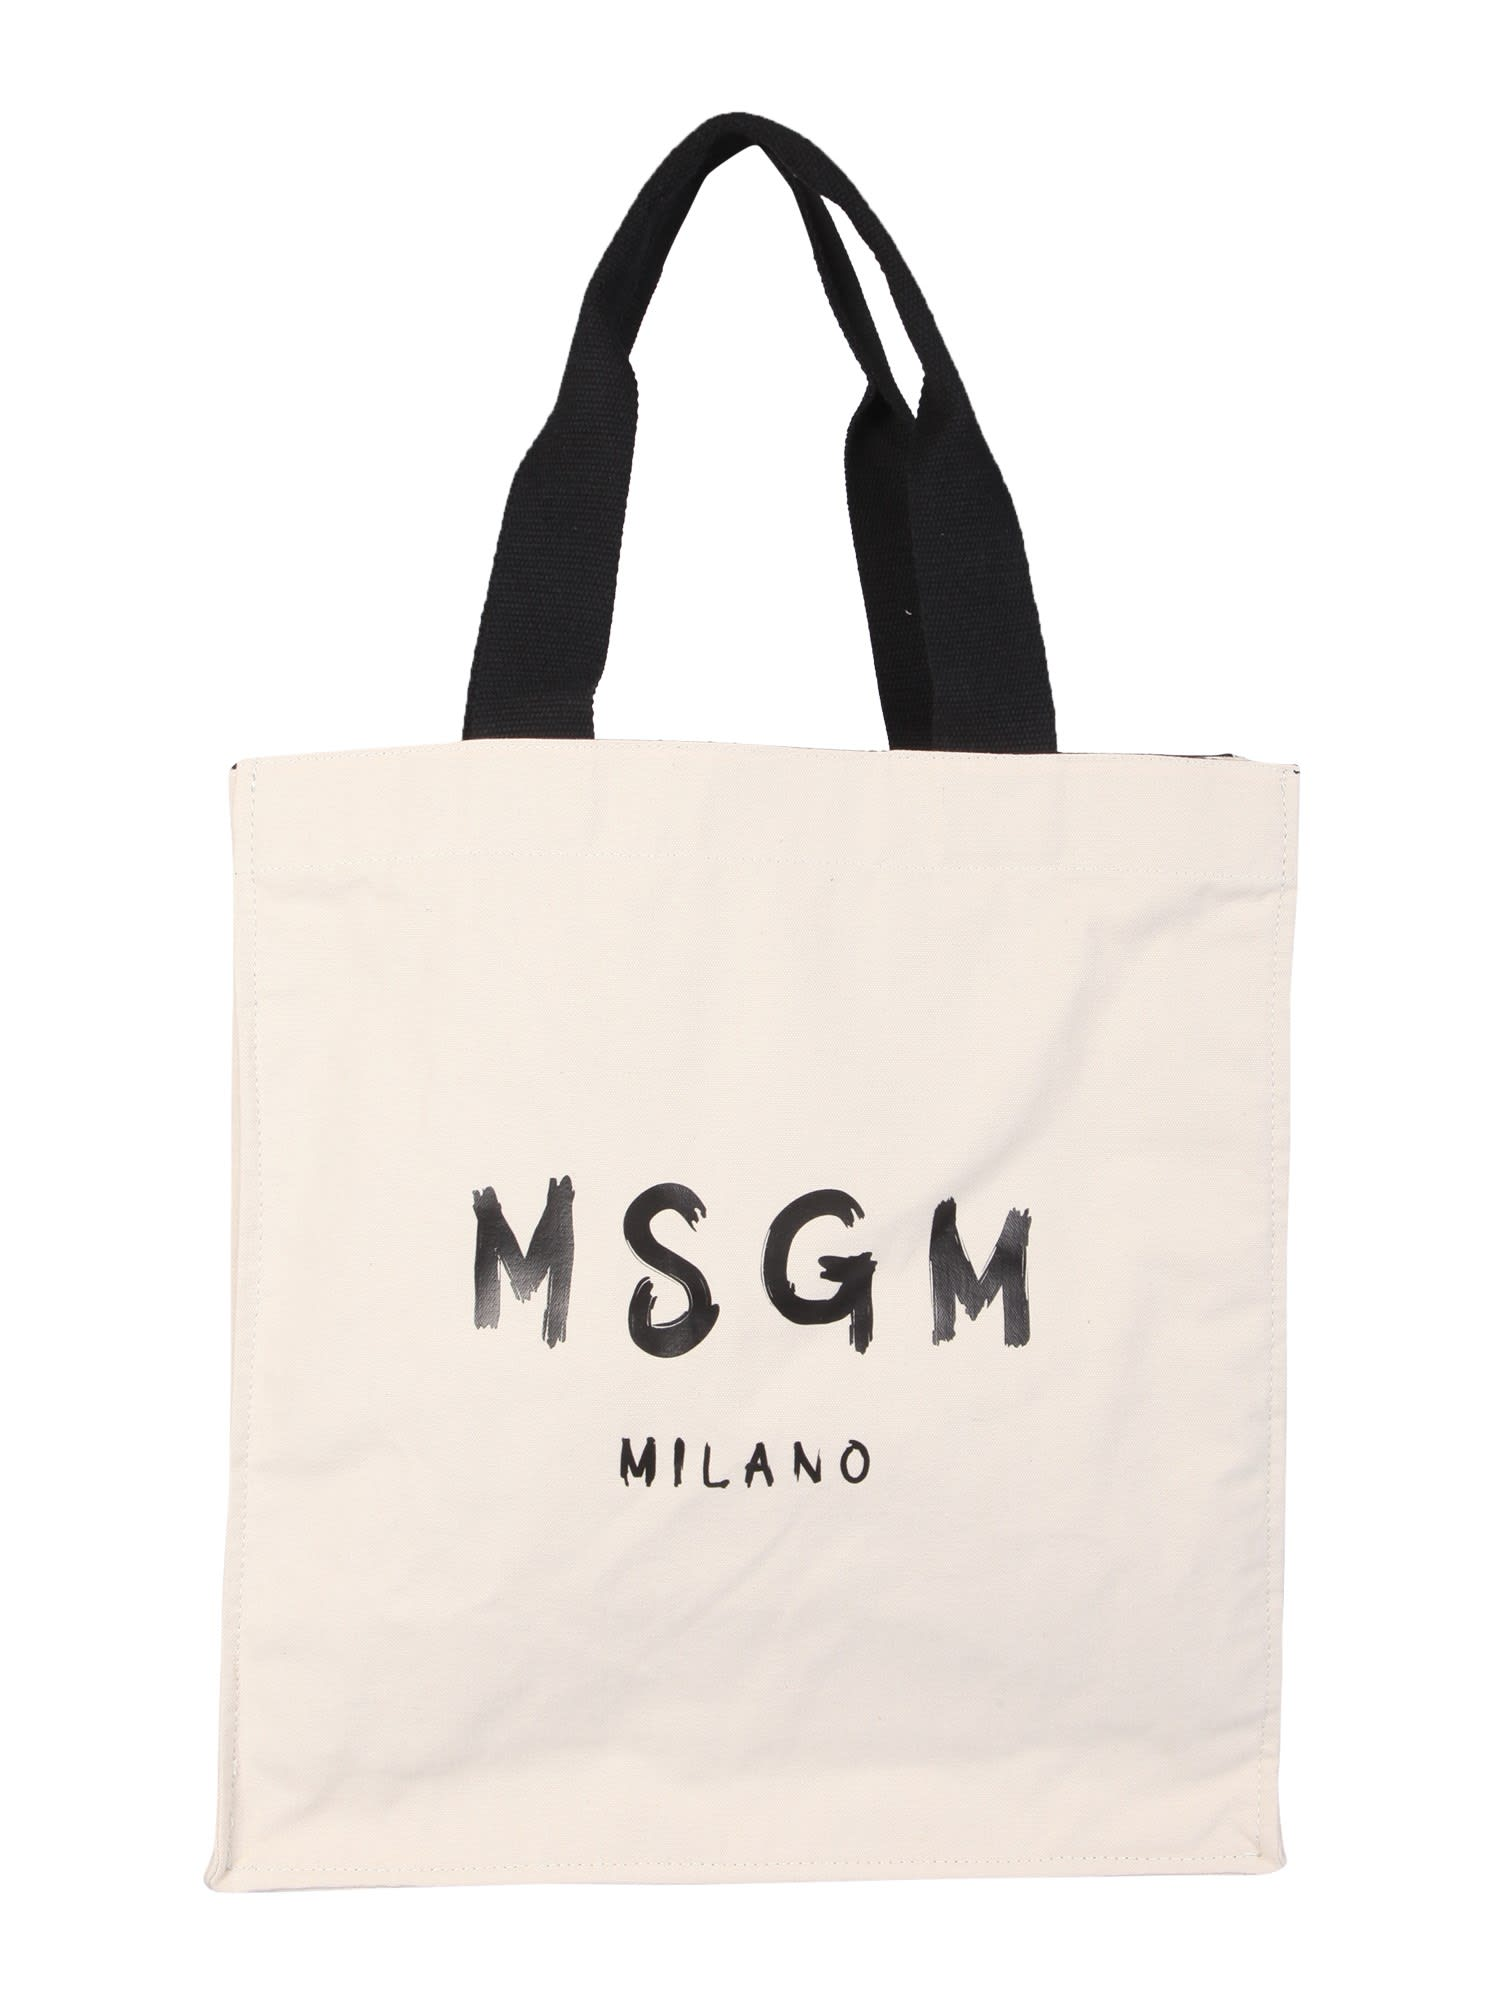 Msgm Totes TOTE BAG WITH BRUSHED LOGO